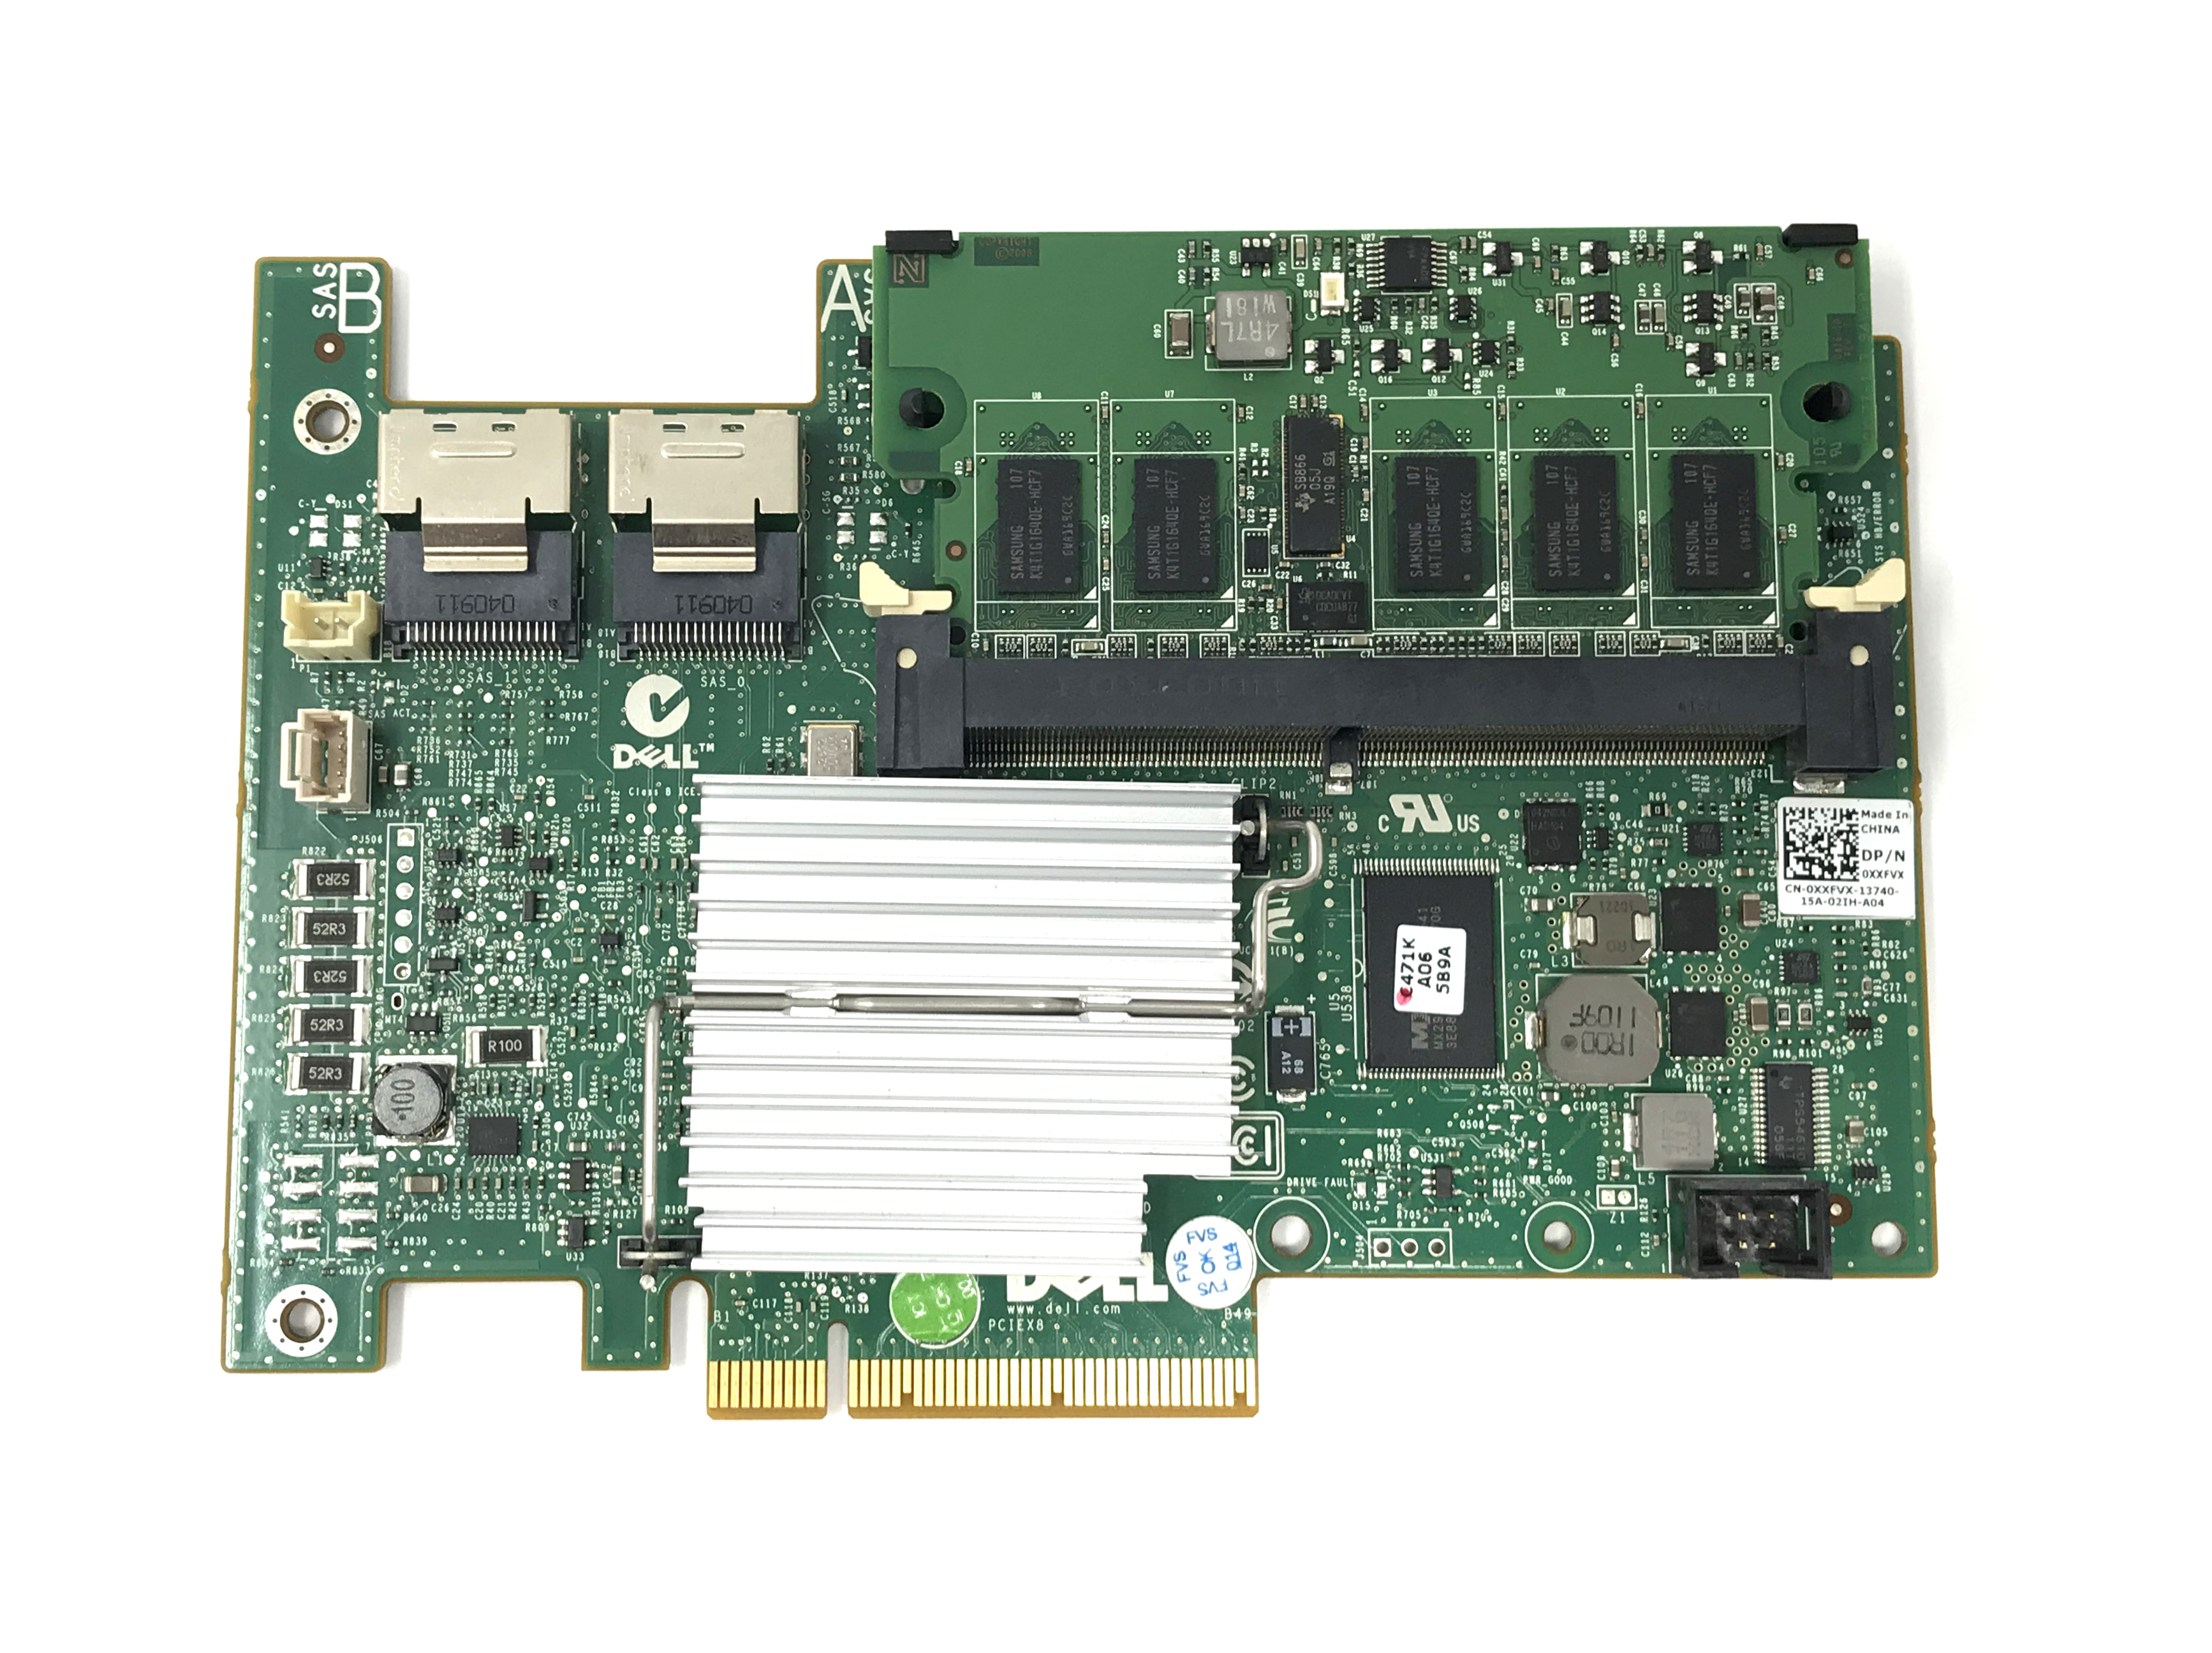 XXFVX DELL PERC H700 512MB CACHE INTEGRATED RAID CONTROLLER (XXFVX)